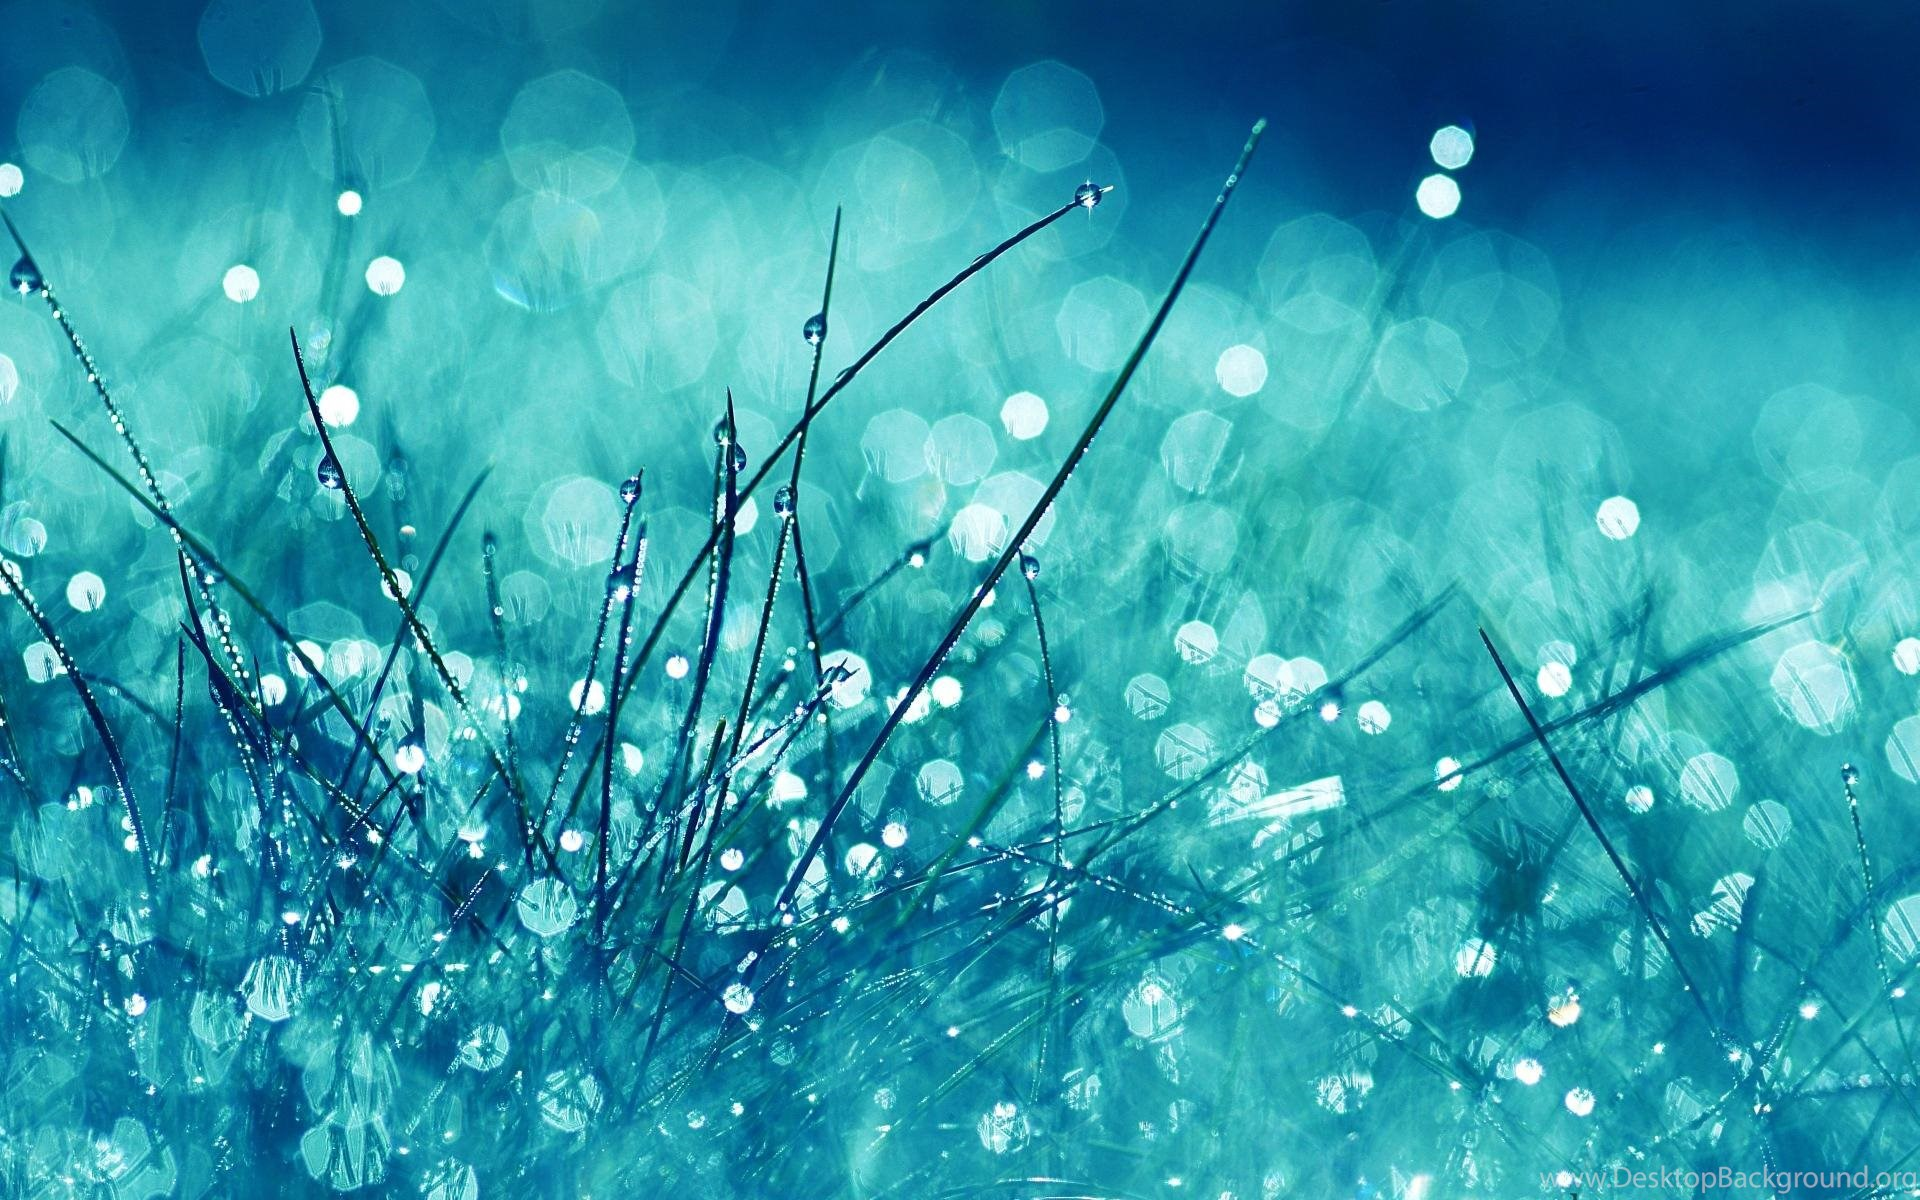 Rain Wallpapers Live Wallpapers For Pc Desktop Background